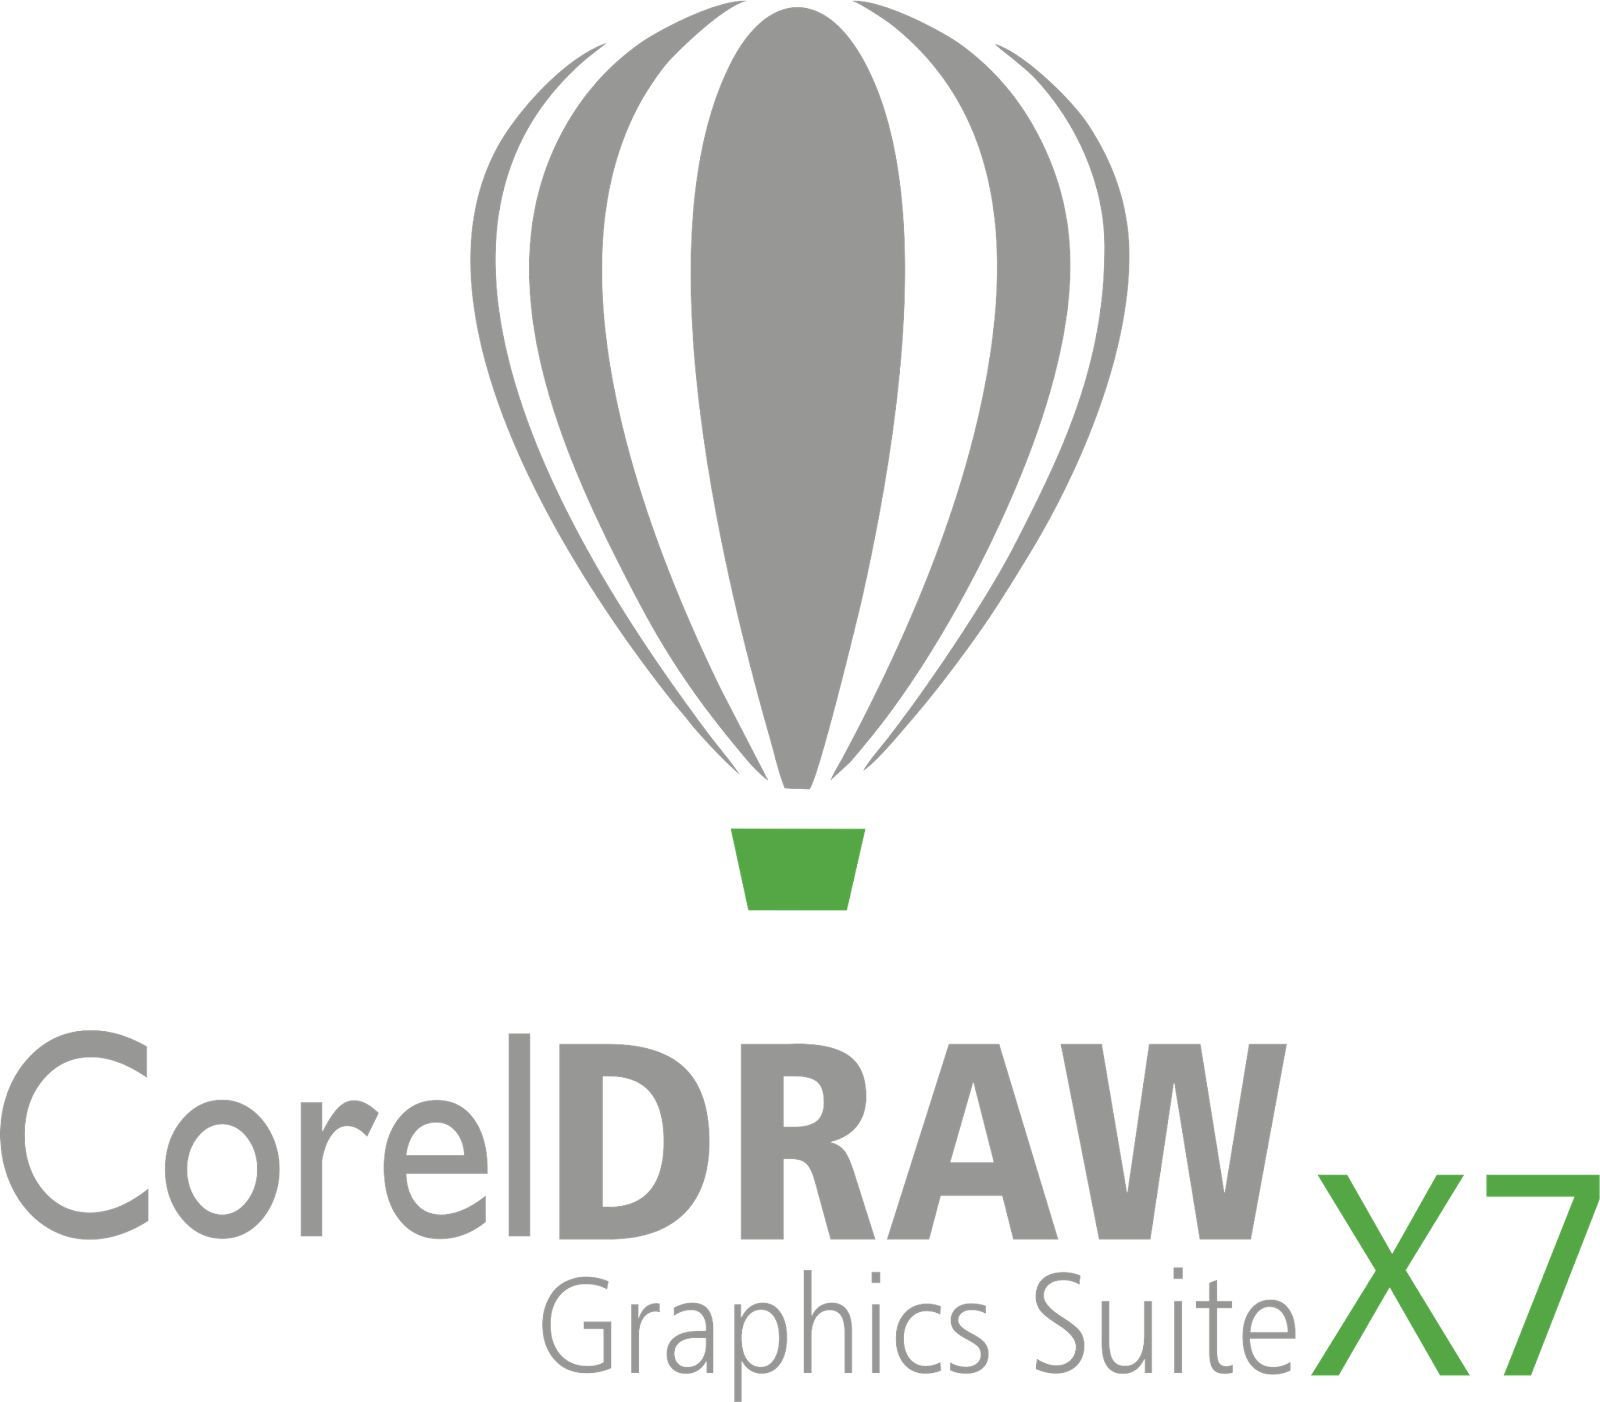 Corel draw clipart images - Learn Coreldraw X7 X8